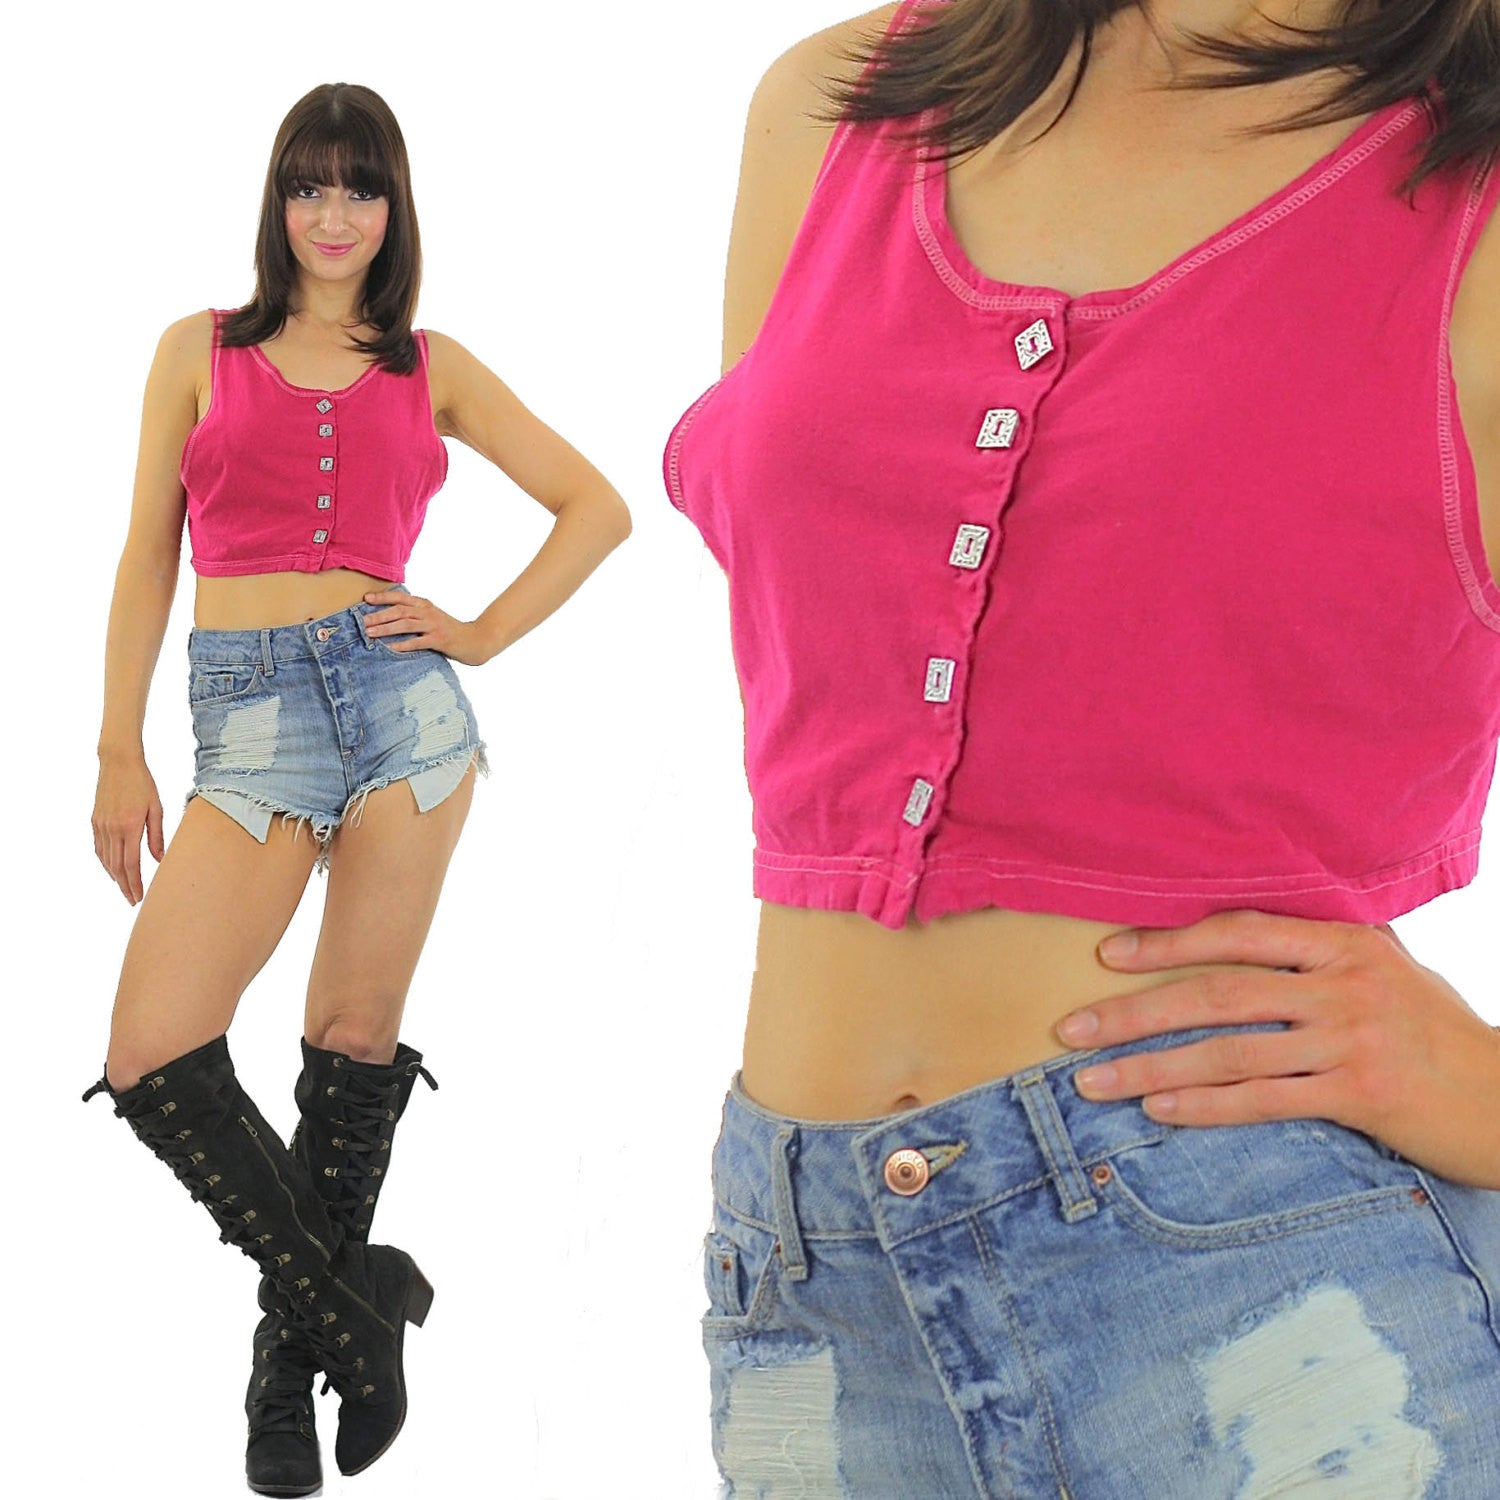 Pink Crop top Sleeveless Scoop Neck Button down Tank top 90s Grunge 80s  blouse Hot Pink Bright Bohemian Small Medium - shabbybabe